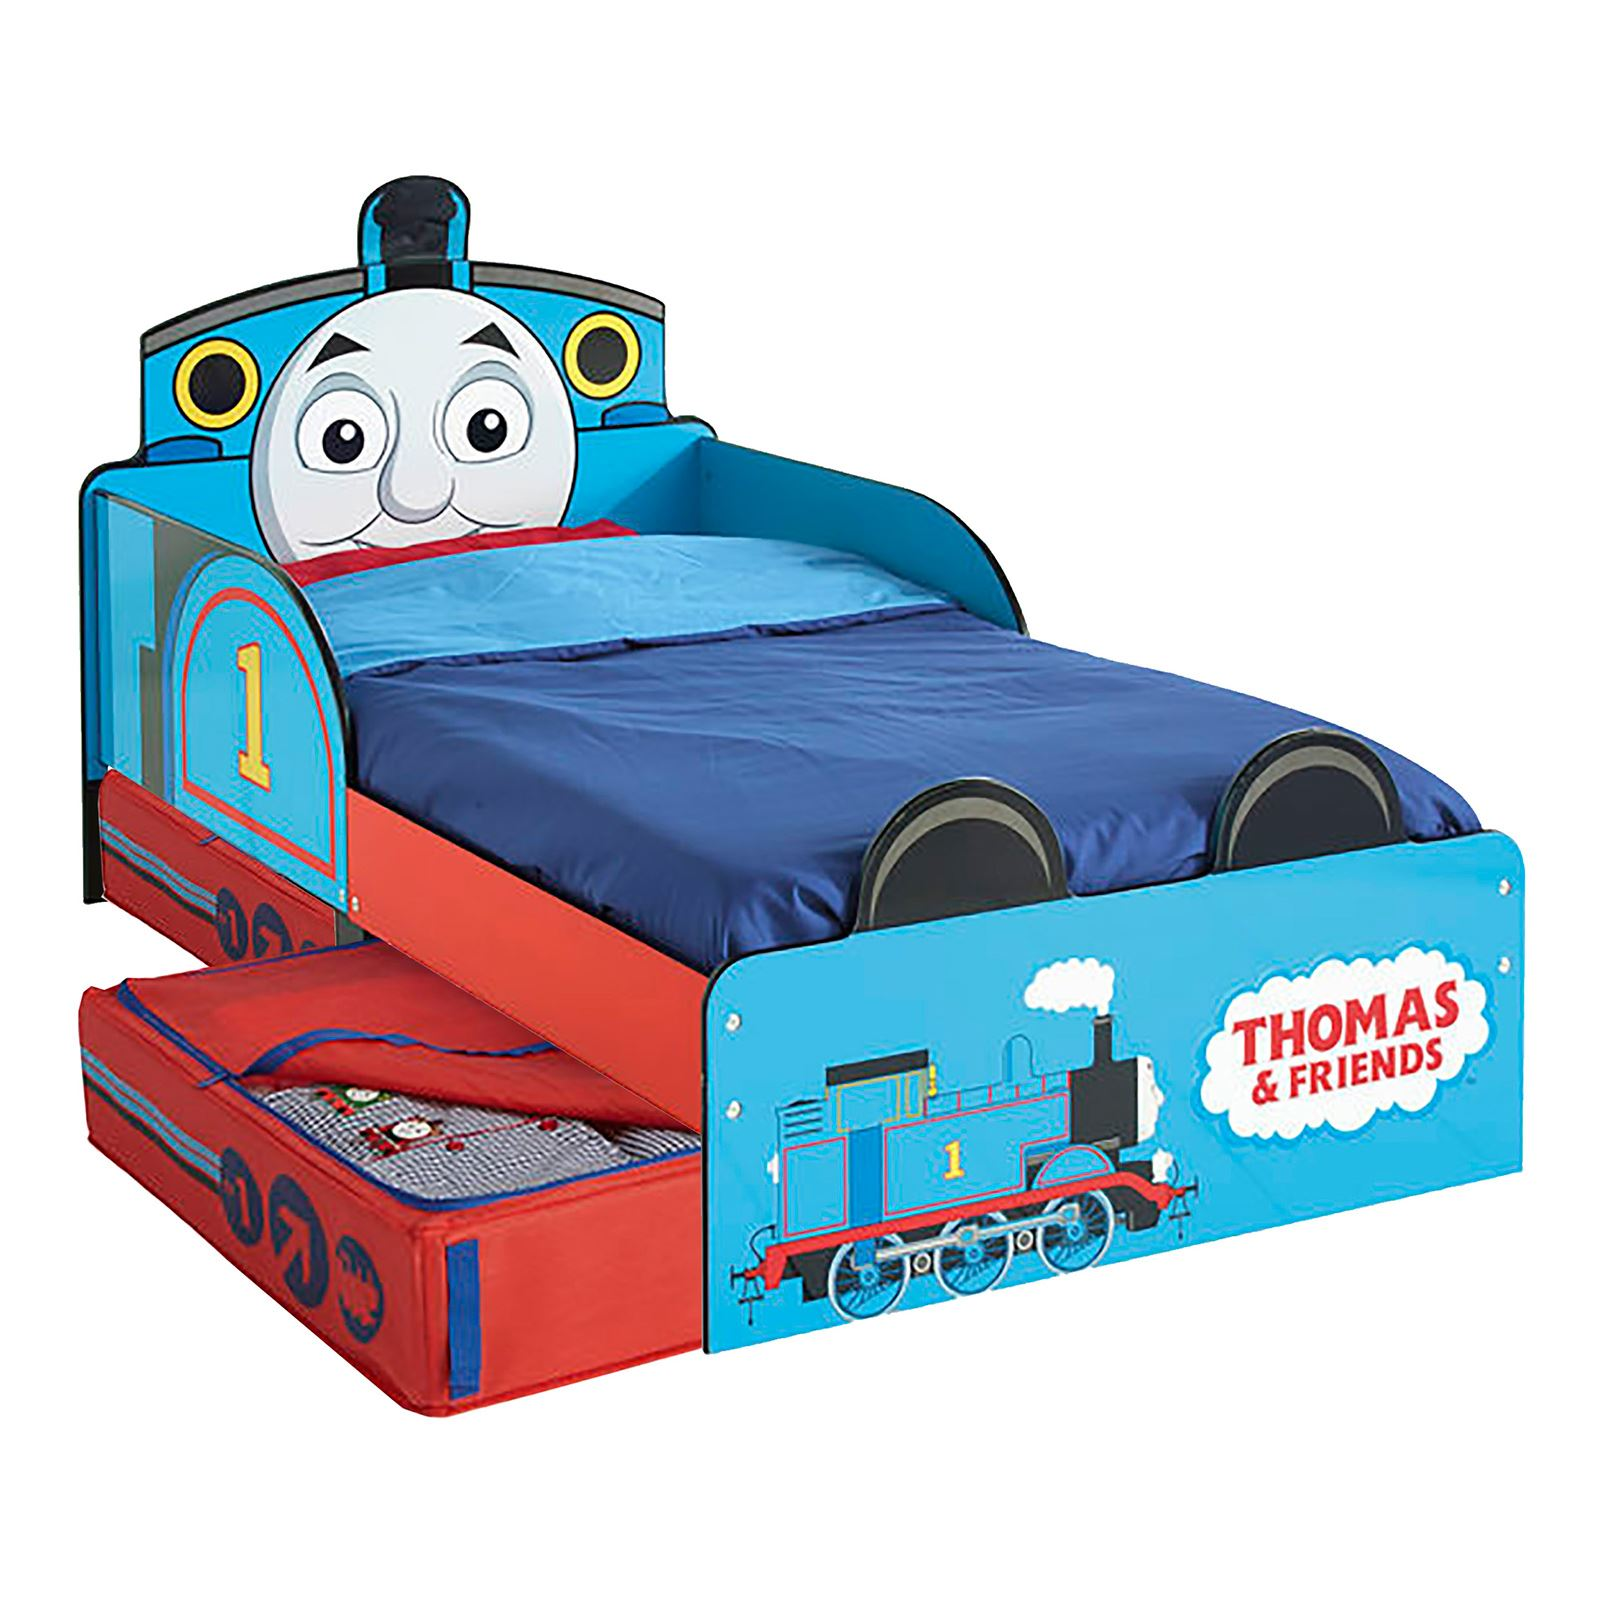 THOMAS Amp FRIENDS MDF TODDLER BED WITH STORAGE NEW TANK